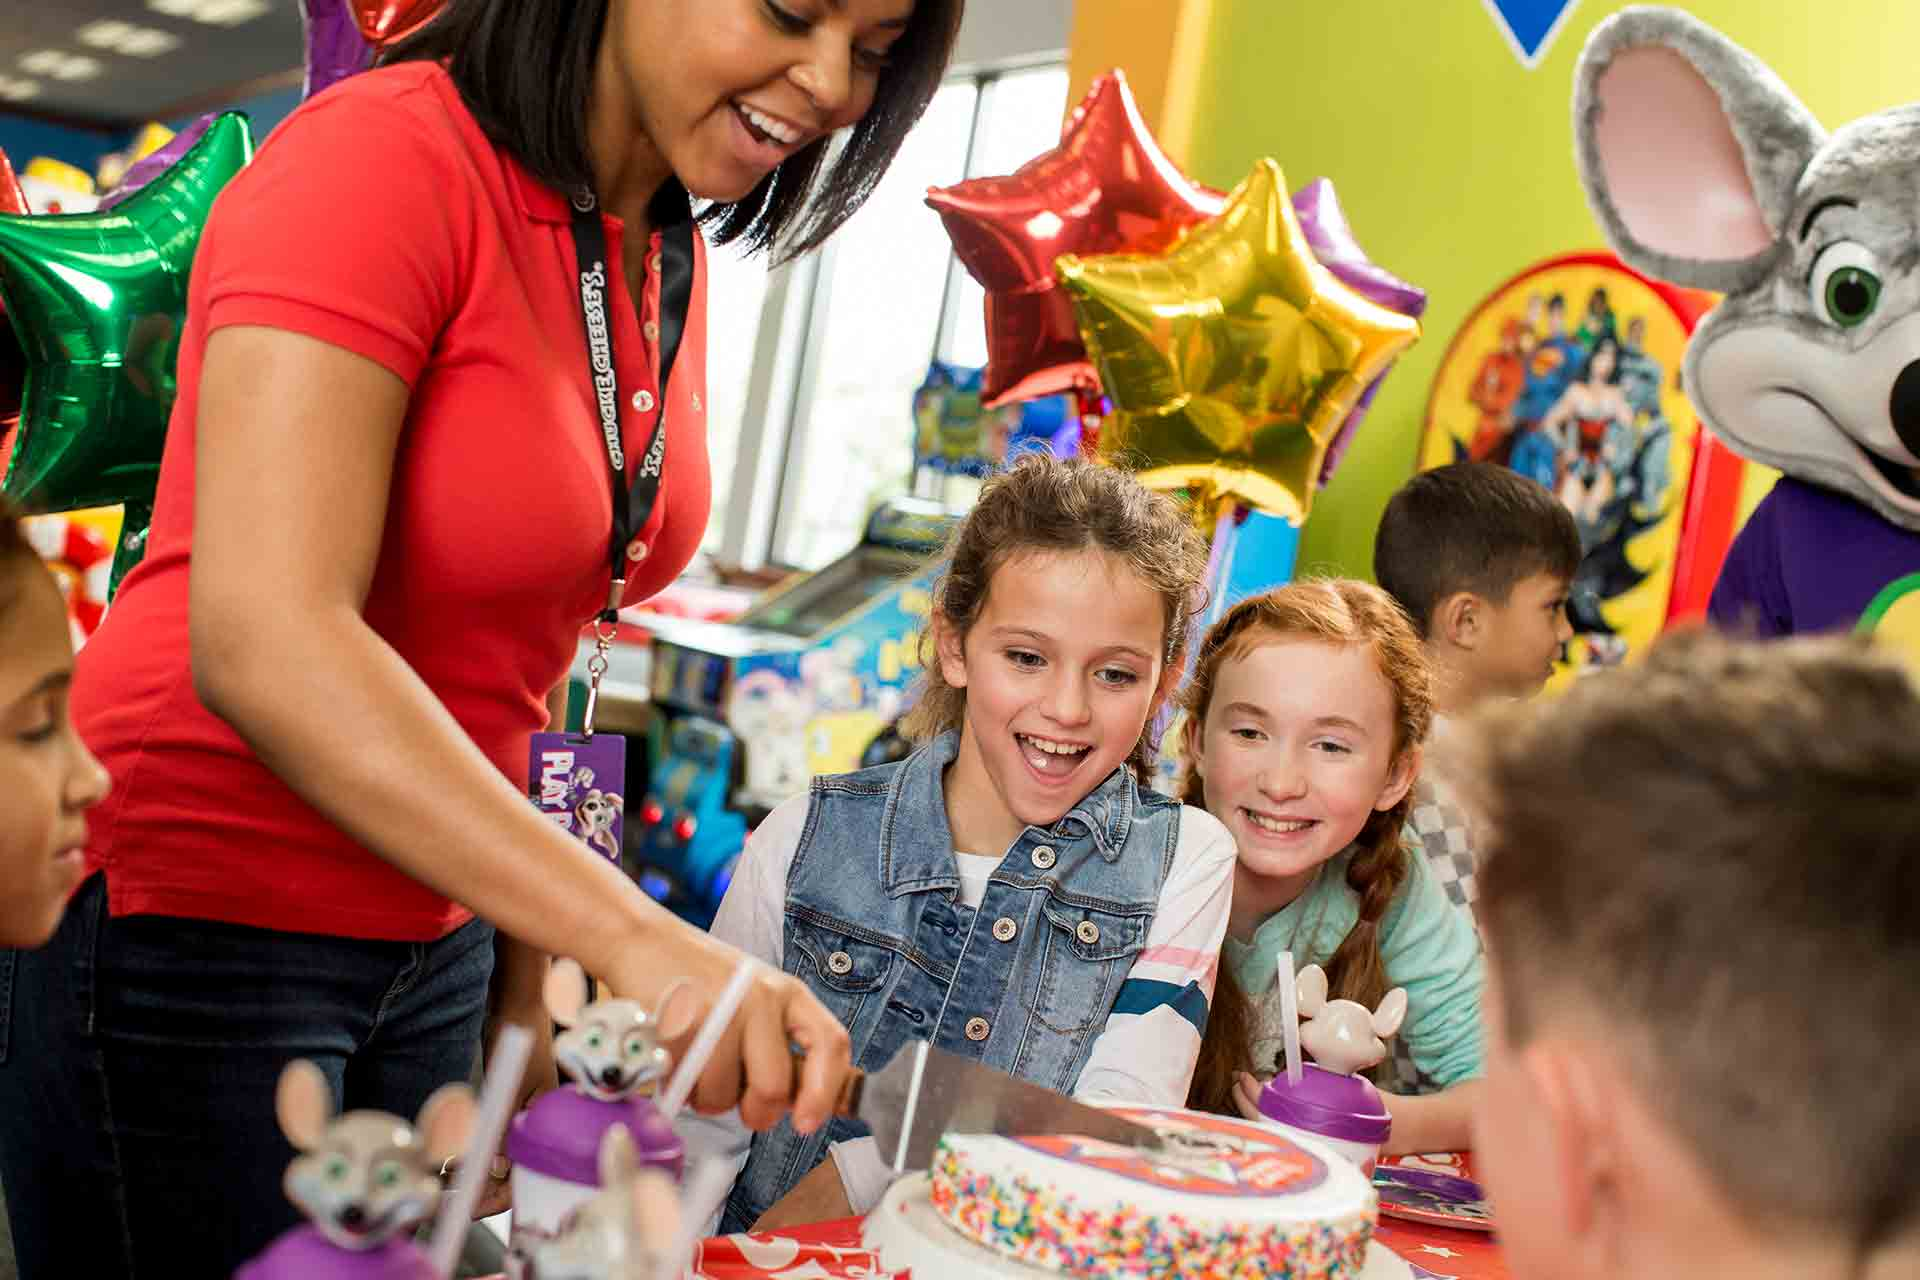 Employee cutting cake for kids